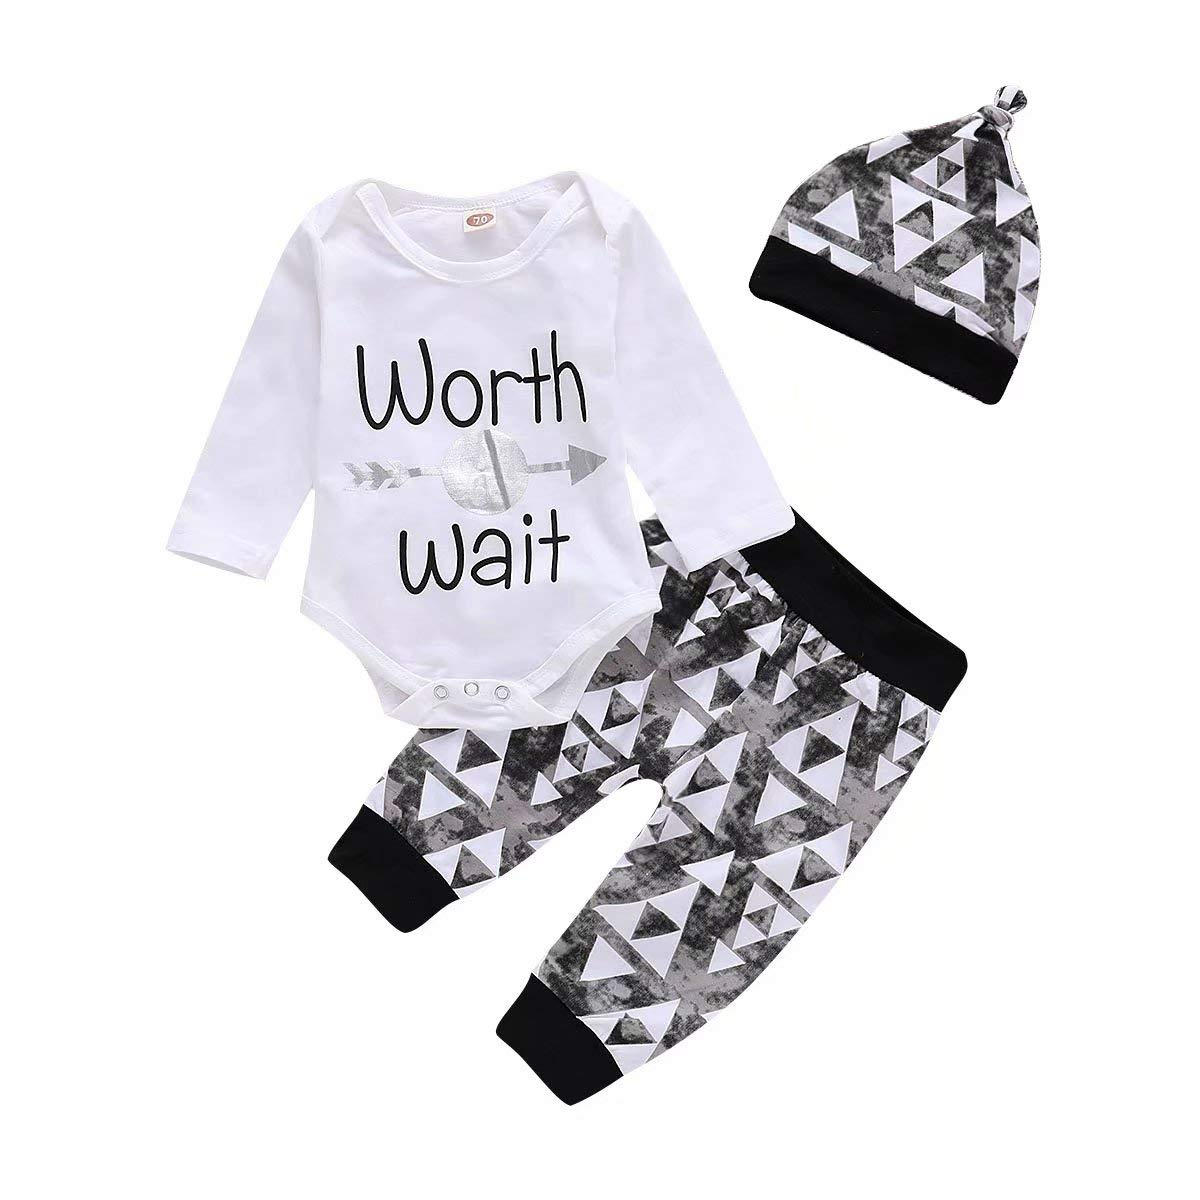 Baby Boy Girl Clothes Romper Outfits 3Pcs Newborn Romper +Pants+Hat Letter Worth Wait Baby Clothes 0-24Months